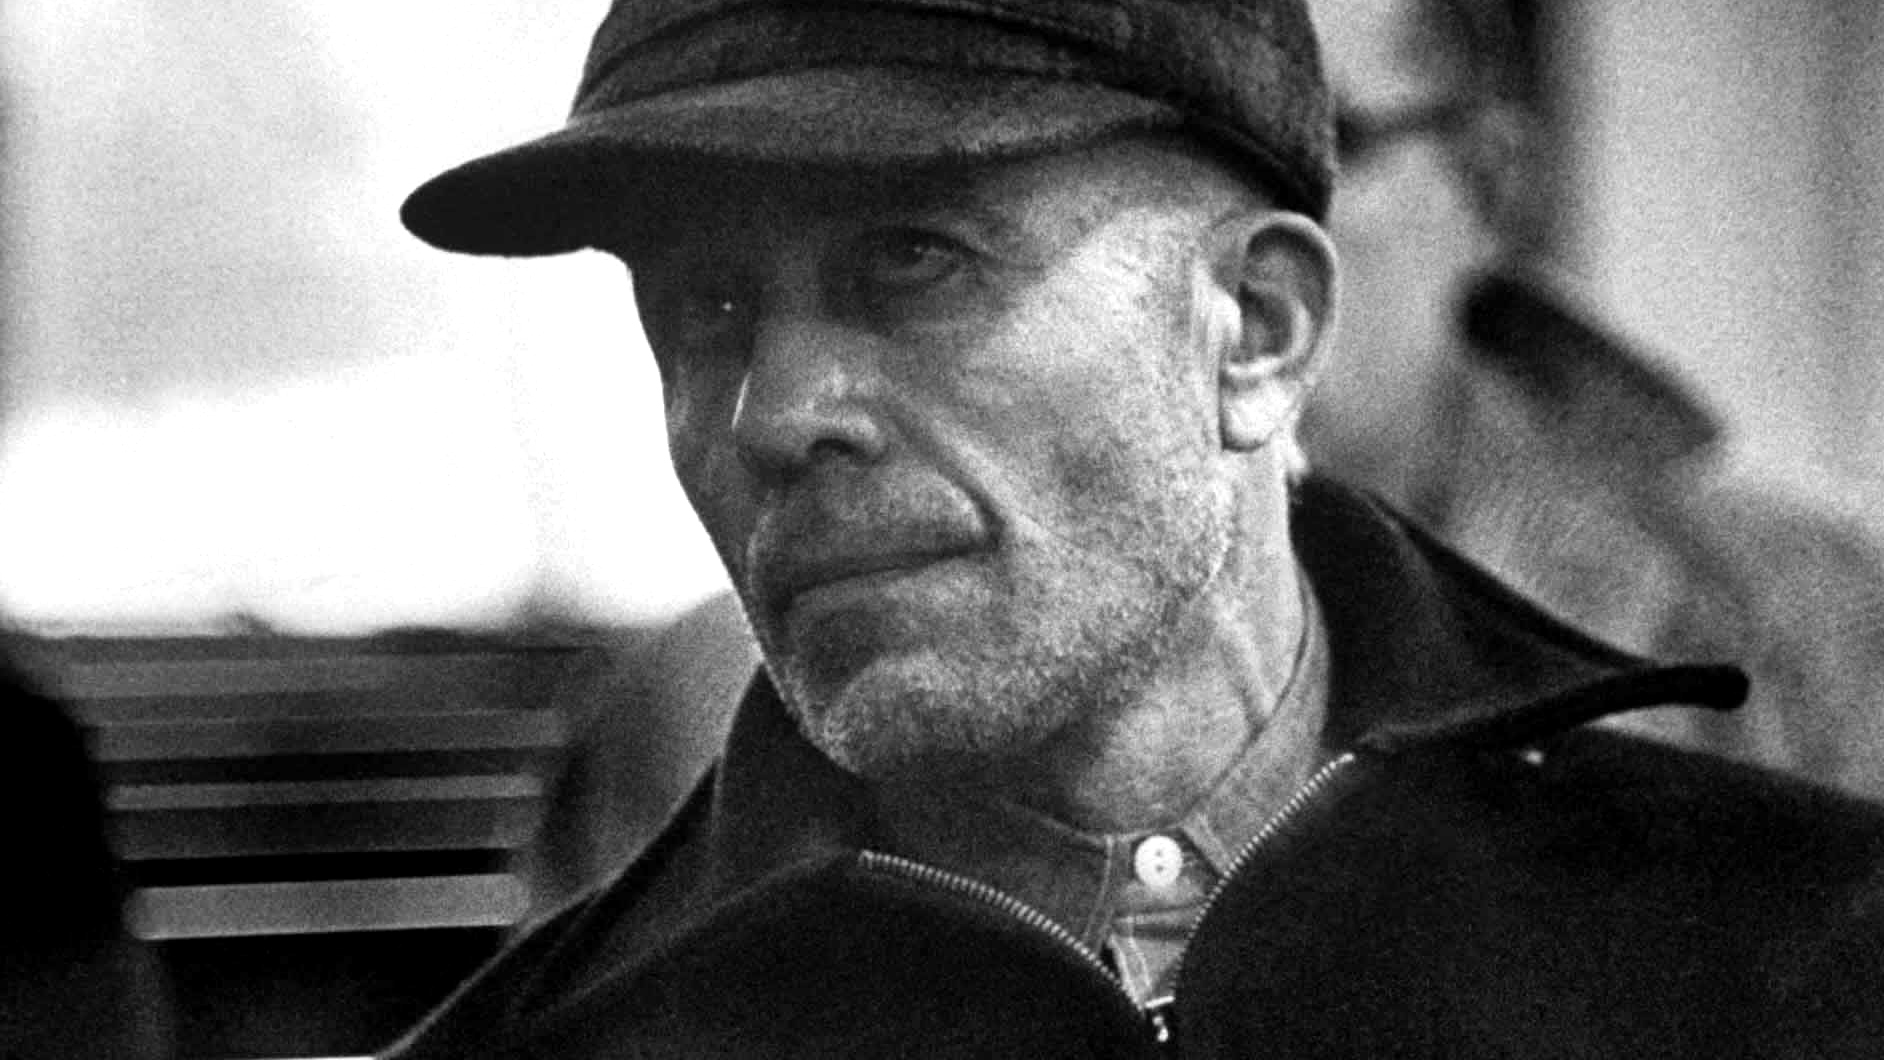 Serial Killer Ed Gein Was a 'Model Patient' After Being Incarcerated for His Gruesome Crimes